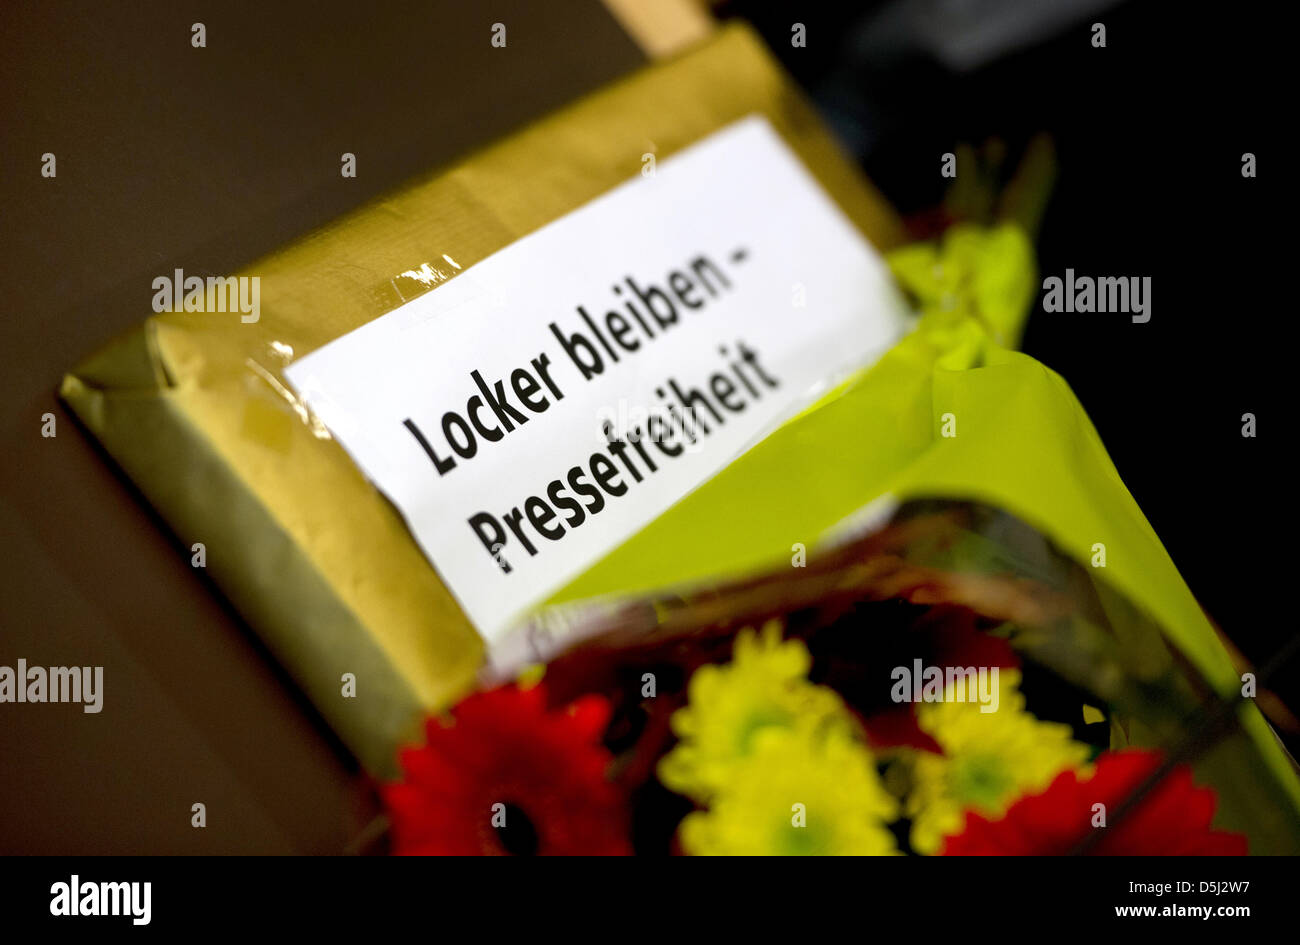 Journalists Thomas Datt and Arndt Ginzel took flowers and a parcel which reads 'Locker bleiben - Pressefreiheit' - Stock Image